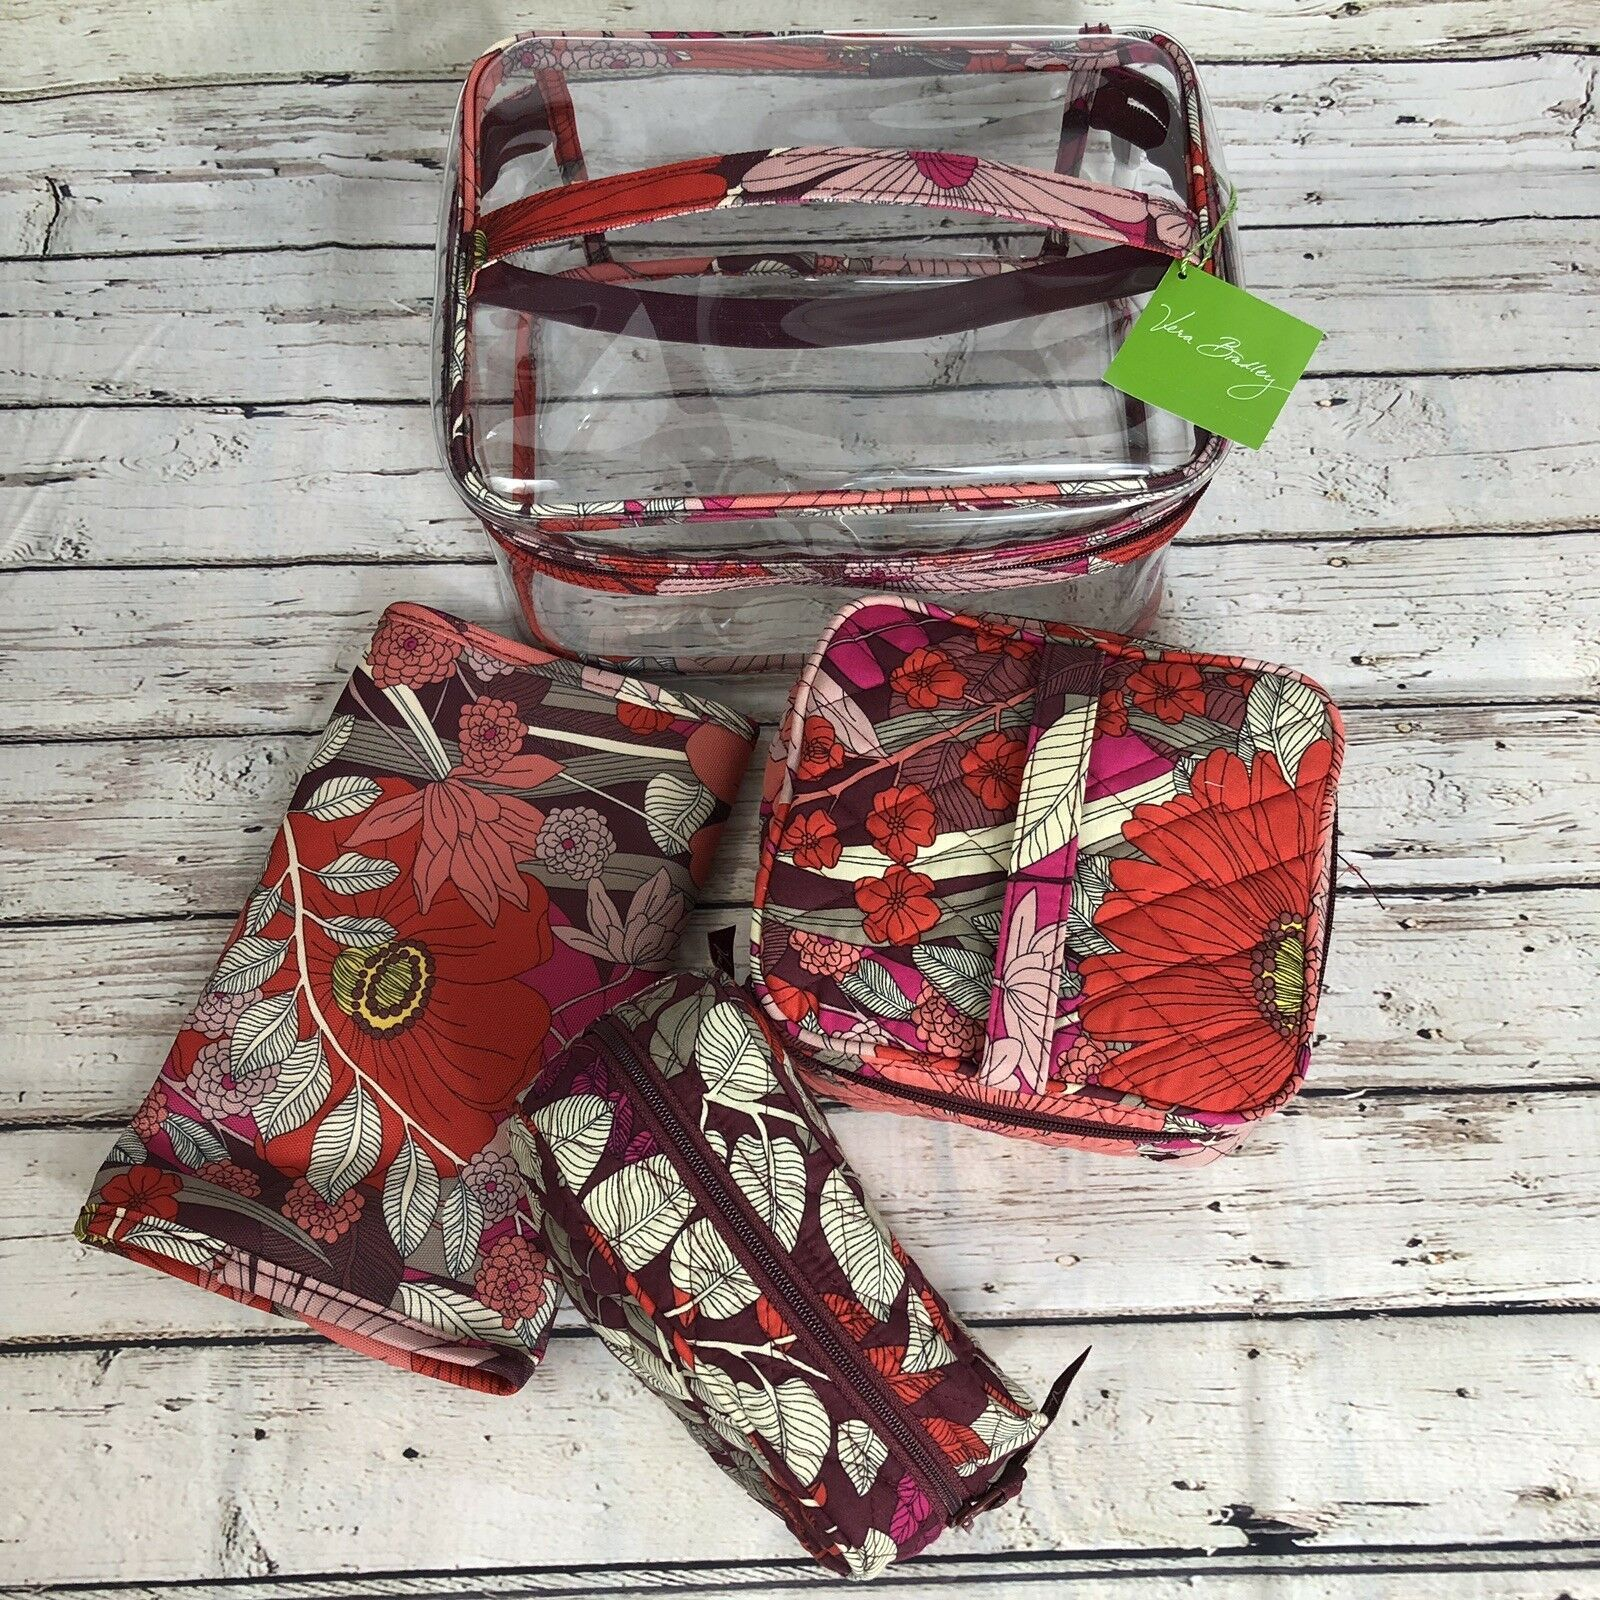 Primary image for 4-Piece Vera Bradley Large Travel Cosmetic Set Bohemian Blooms - $58 Retail GIFT